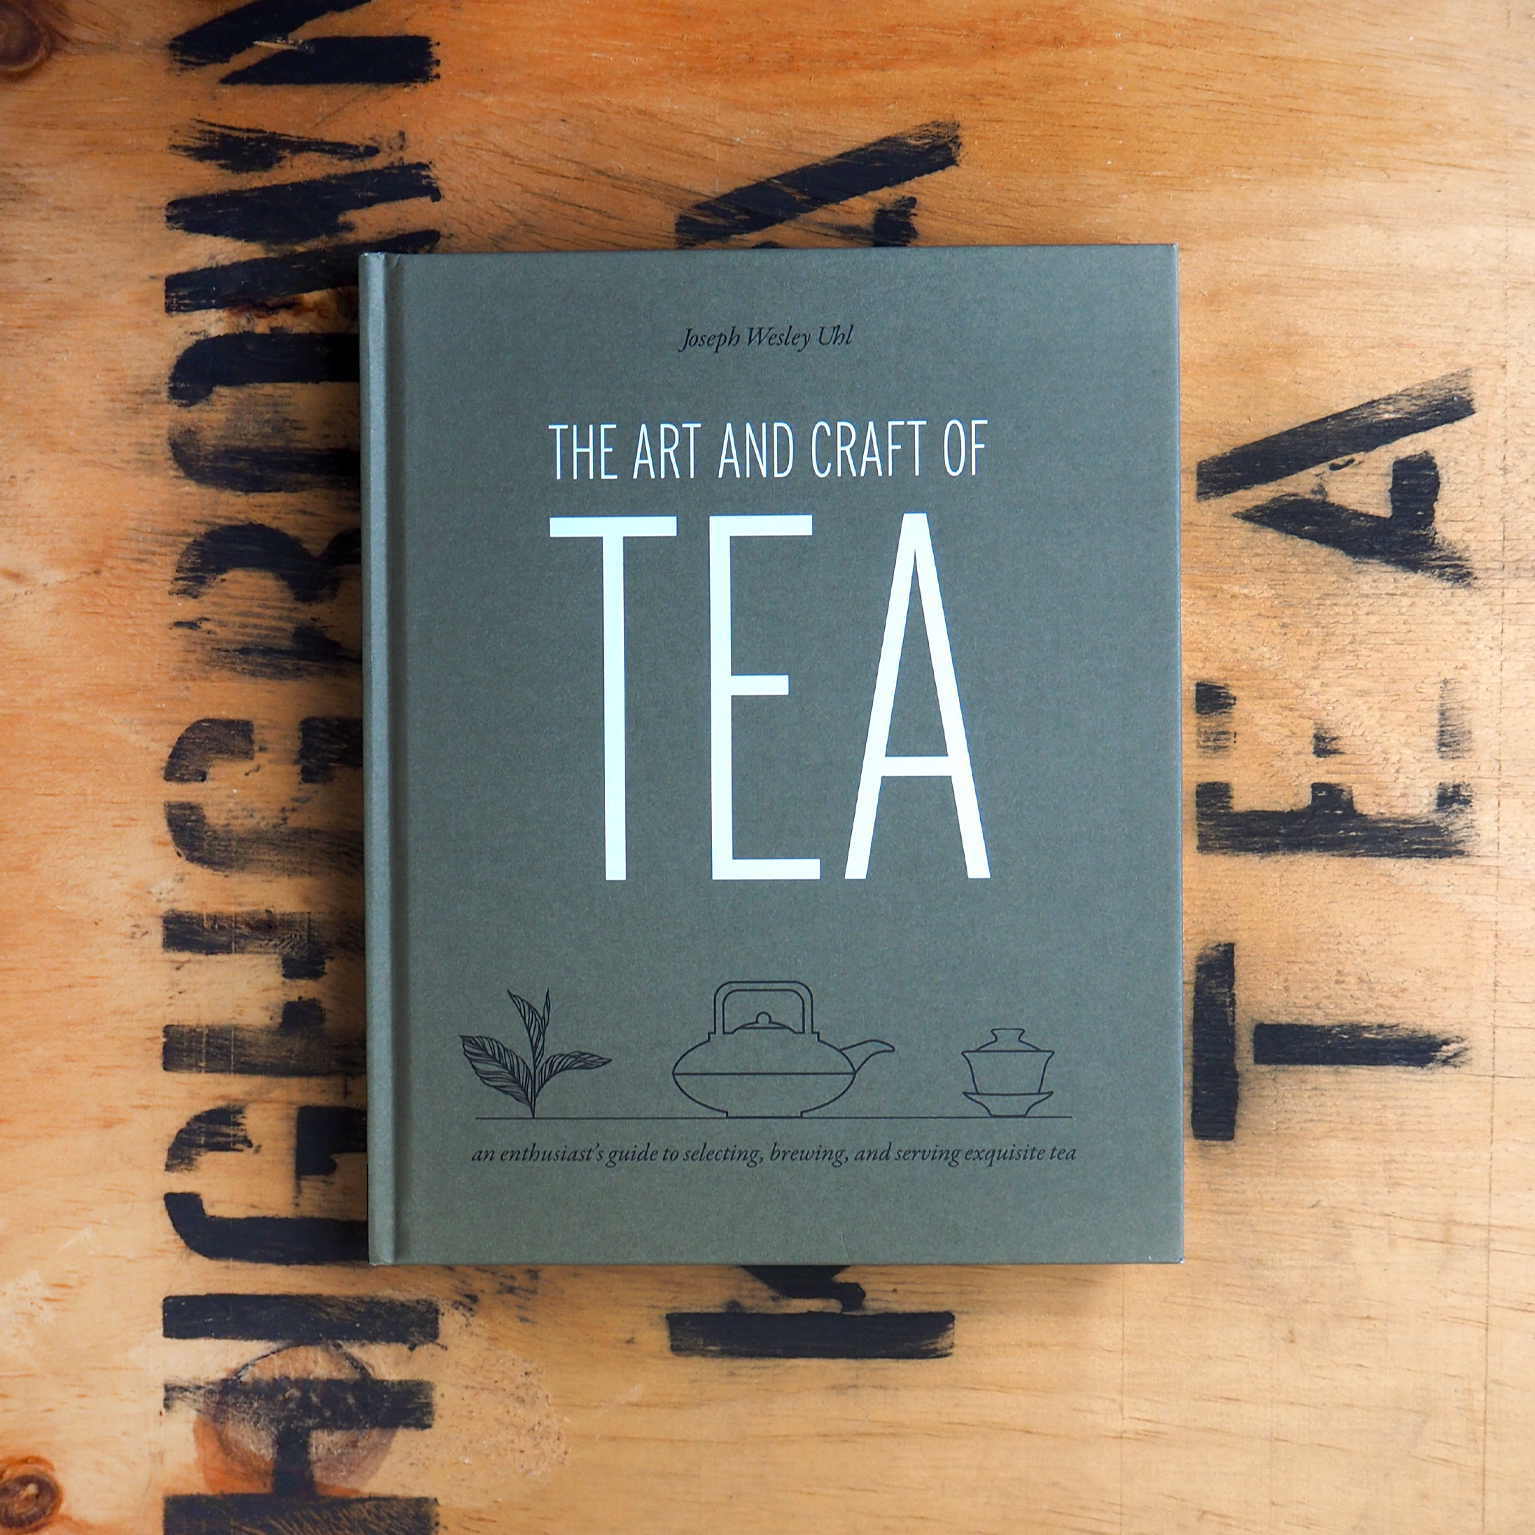 The Art and Craft of Tea By Joseph Uhl